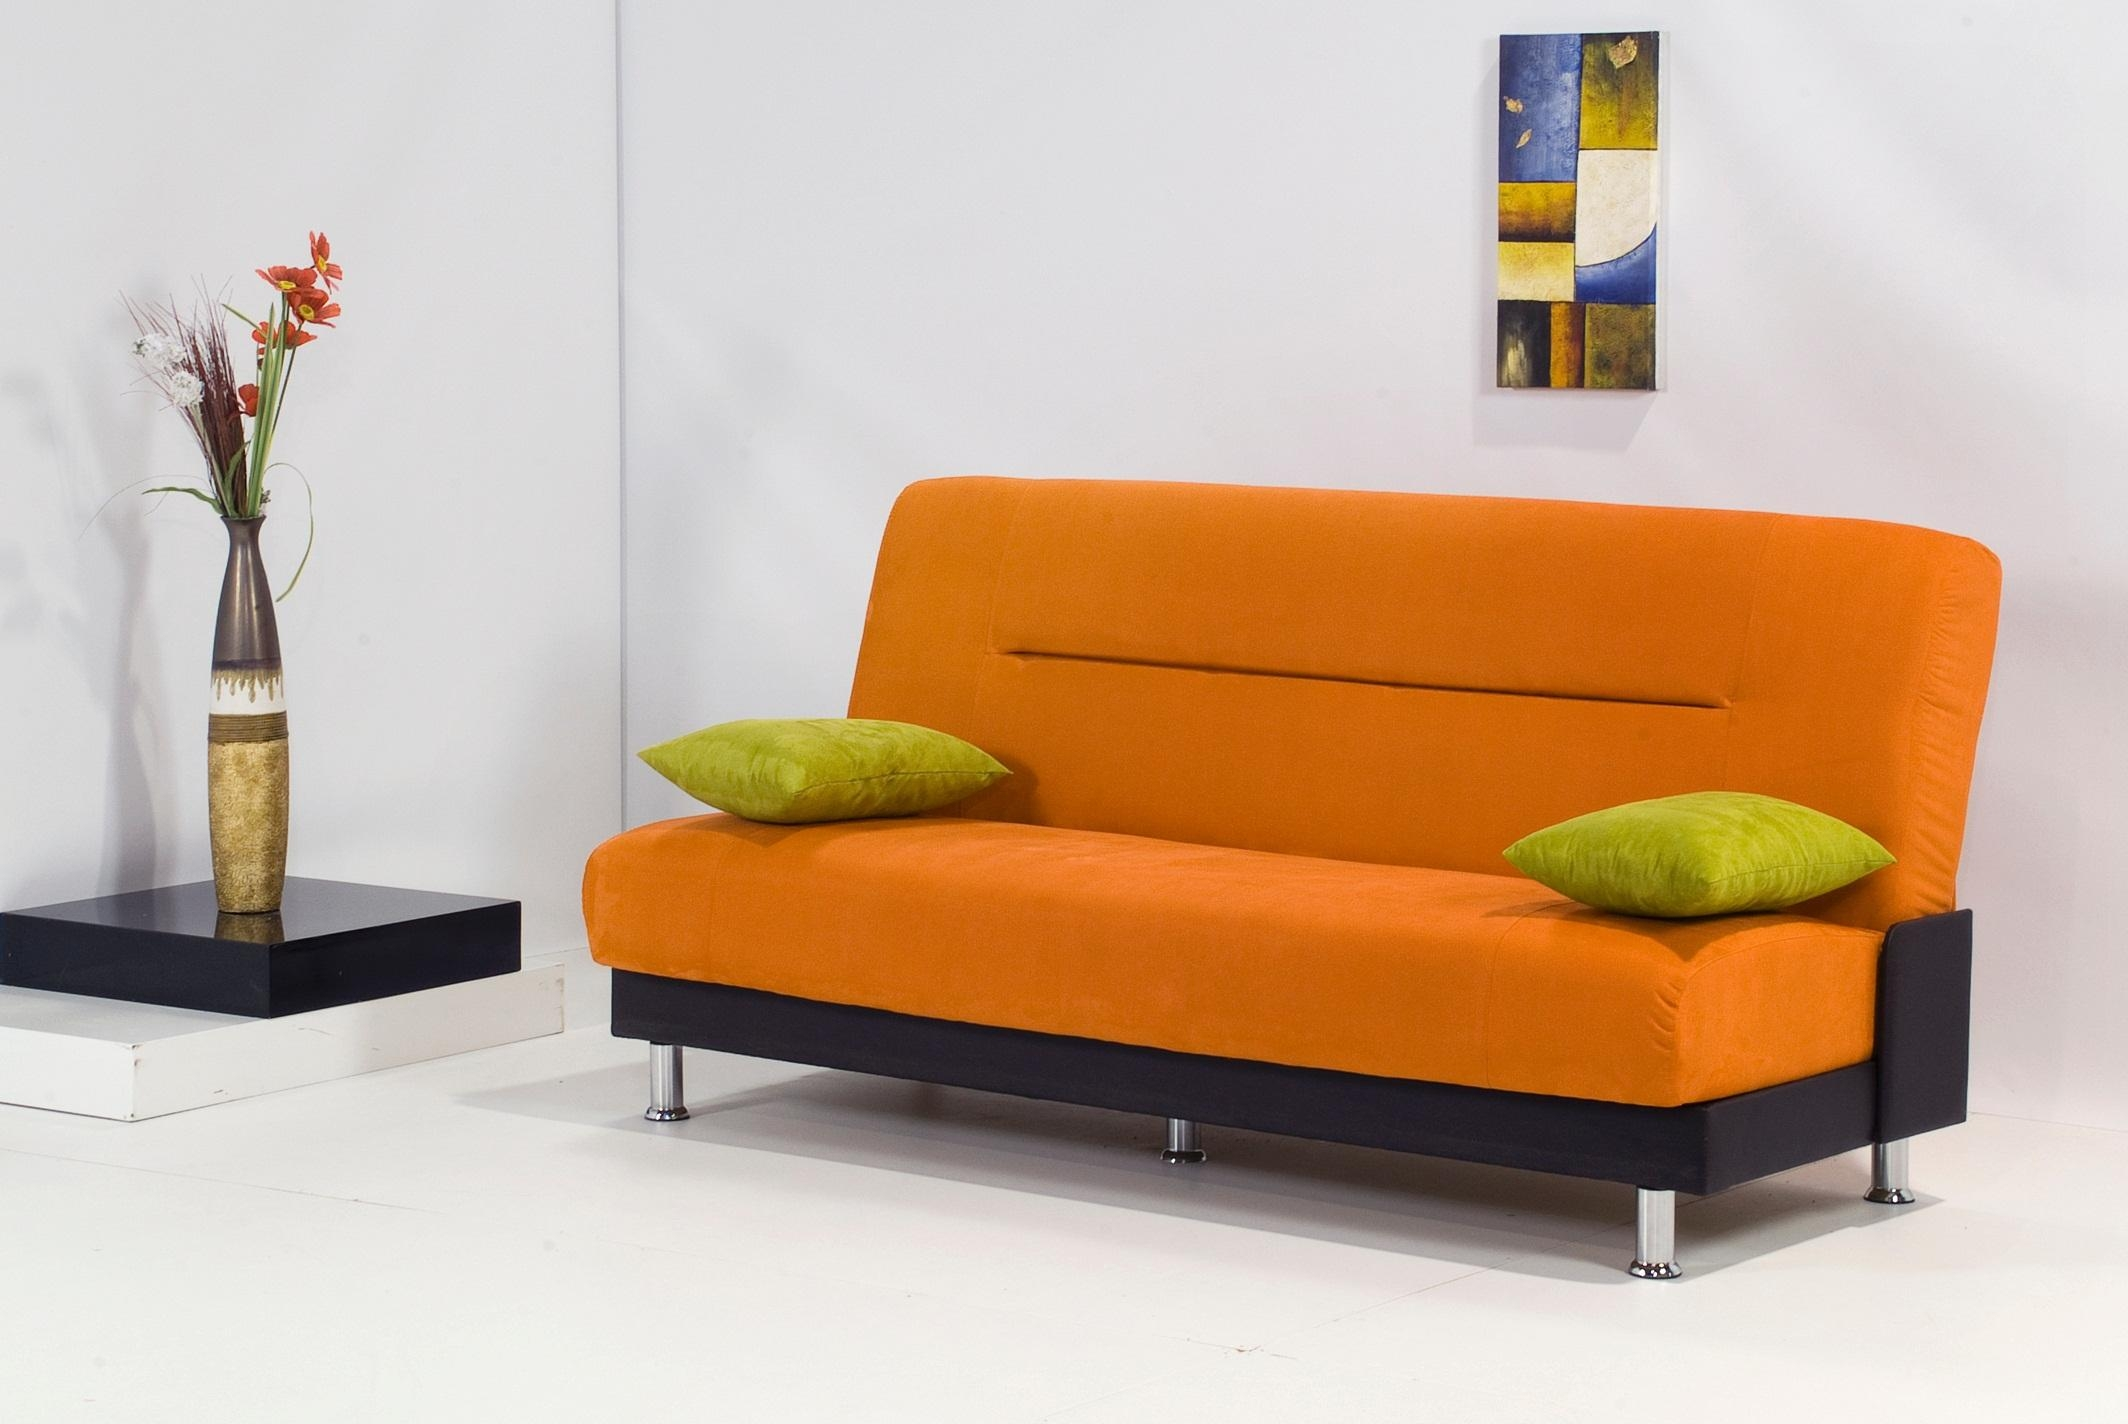 Ikea Sofa Sleeper With Stylish Ikea Orange Sleeper Sofa Design Intended For Orange Ikea Sofas (Image 11 of 20)